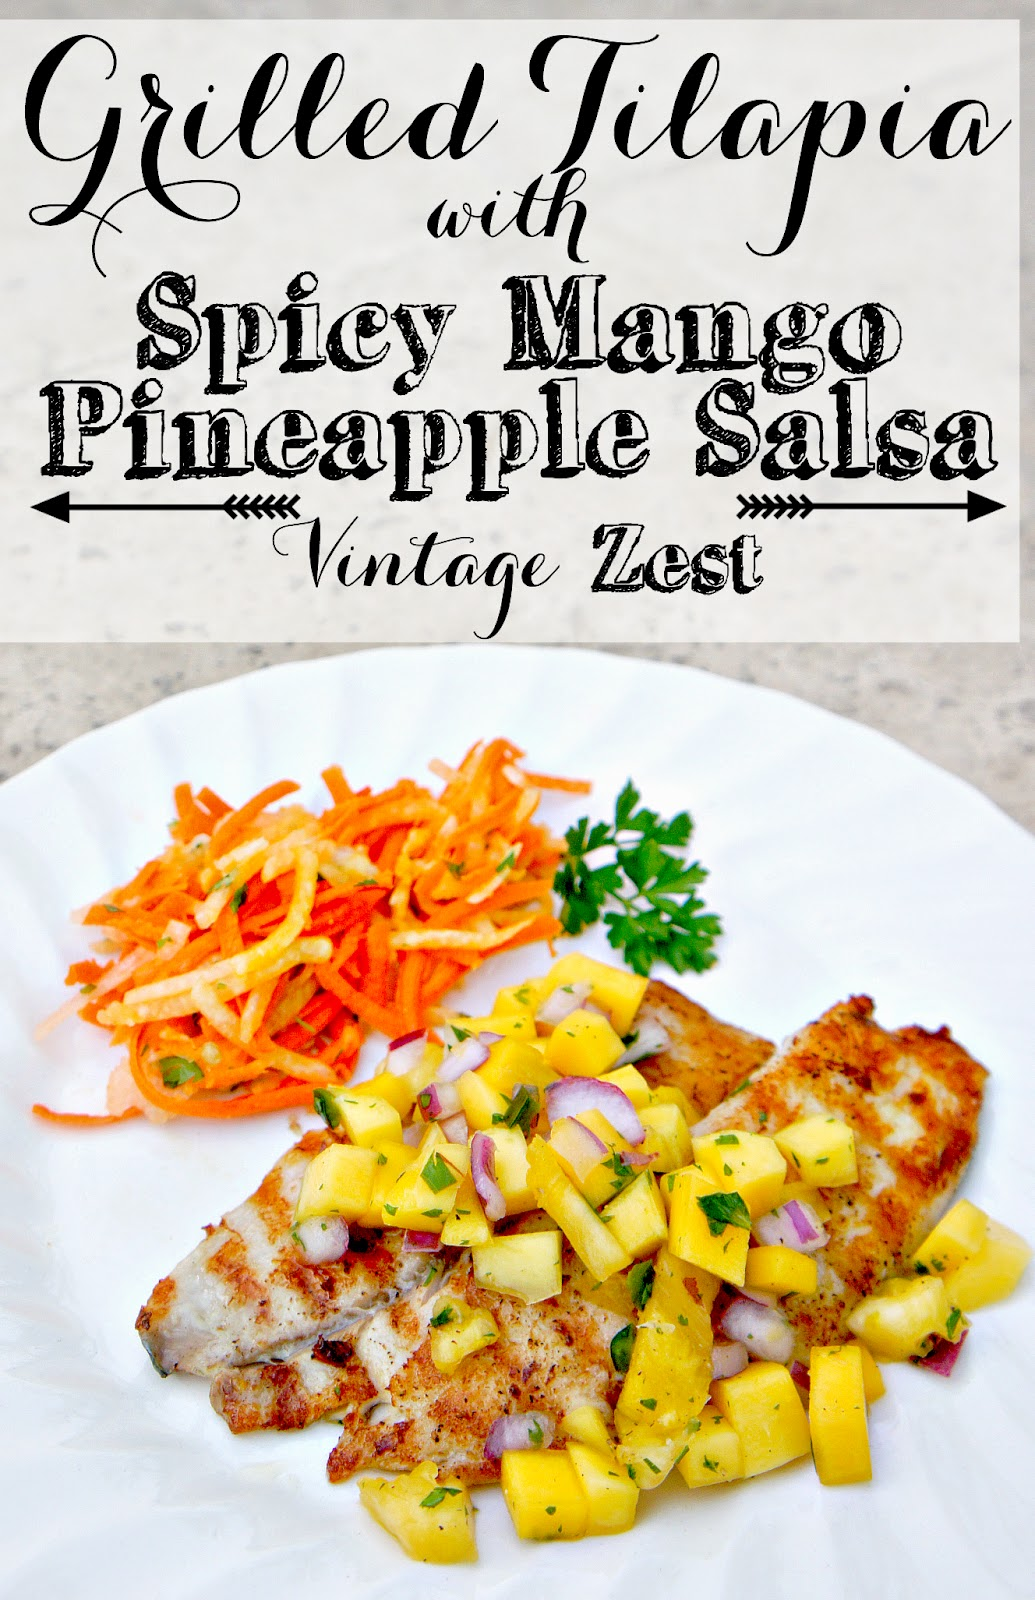 ... tilapia pineapple salsa pinapple salsa for fish mango tilapia recipes